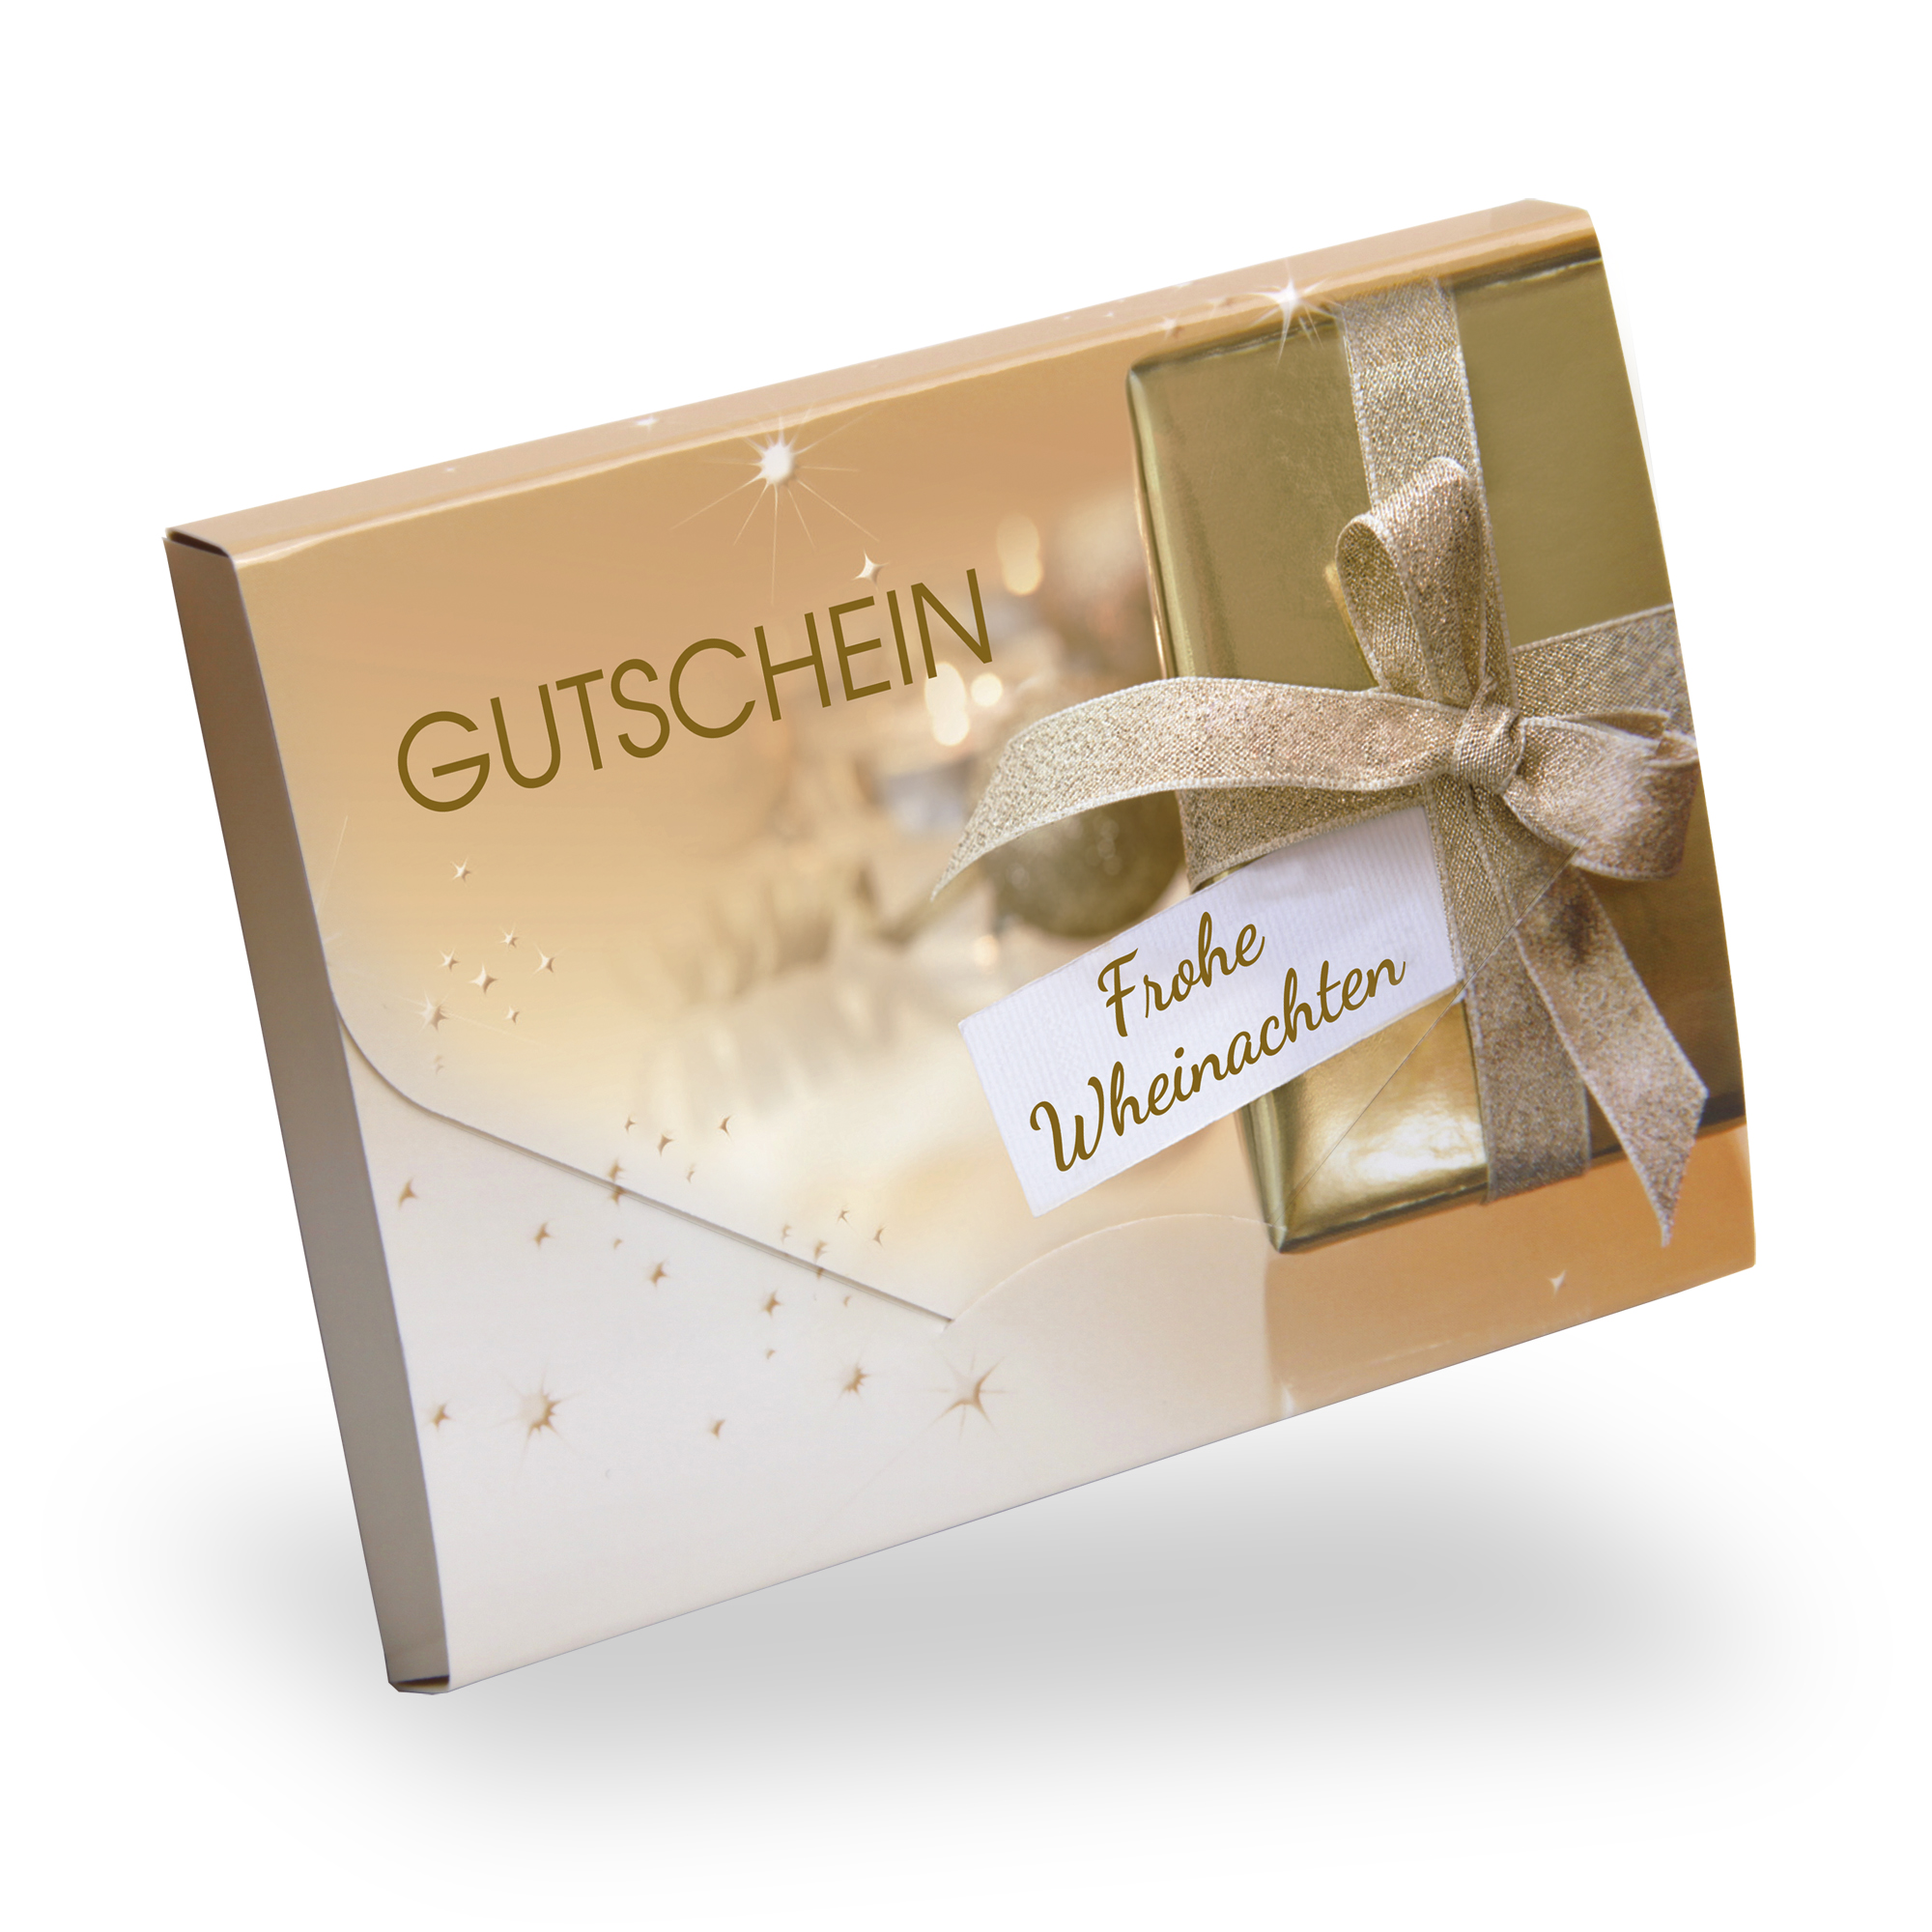 "Gutscheinkarte Cute Case ""golden wonder"" individuell"